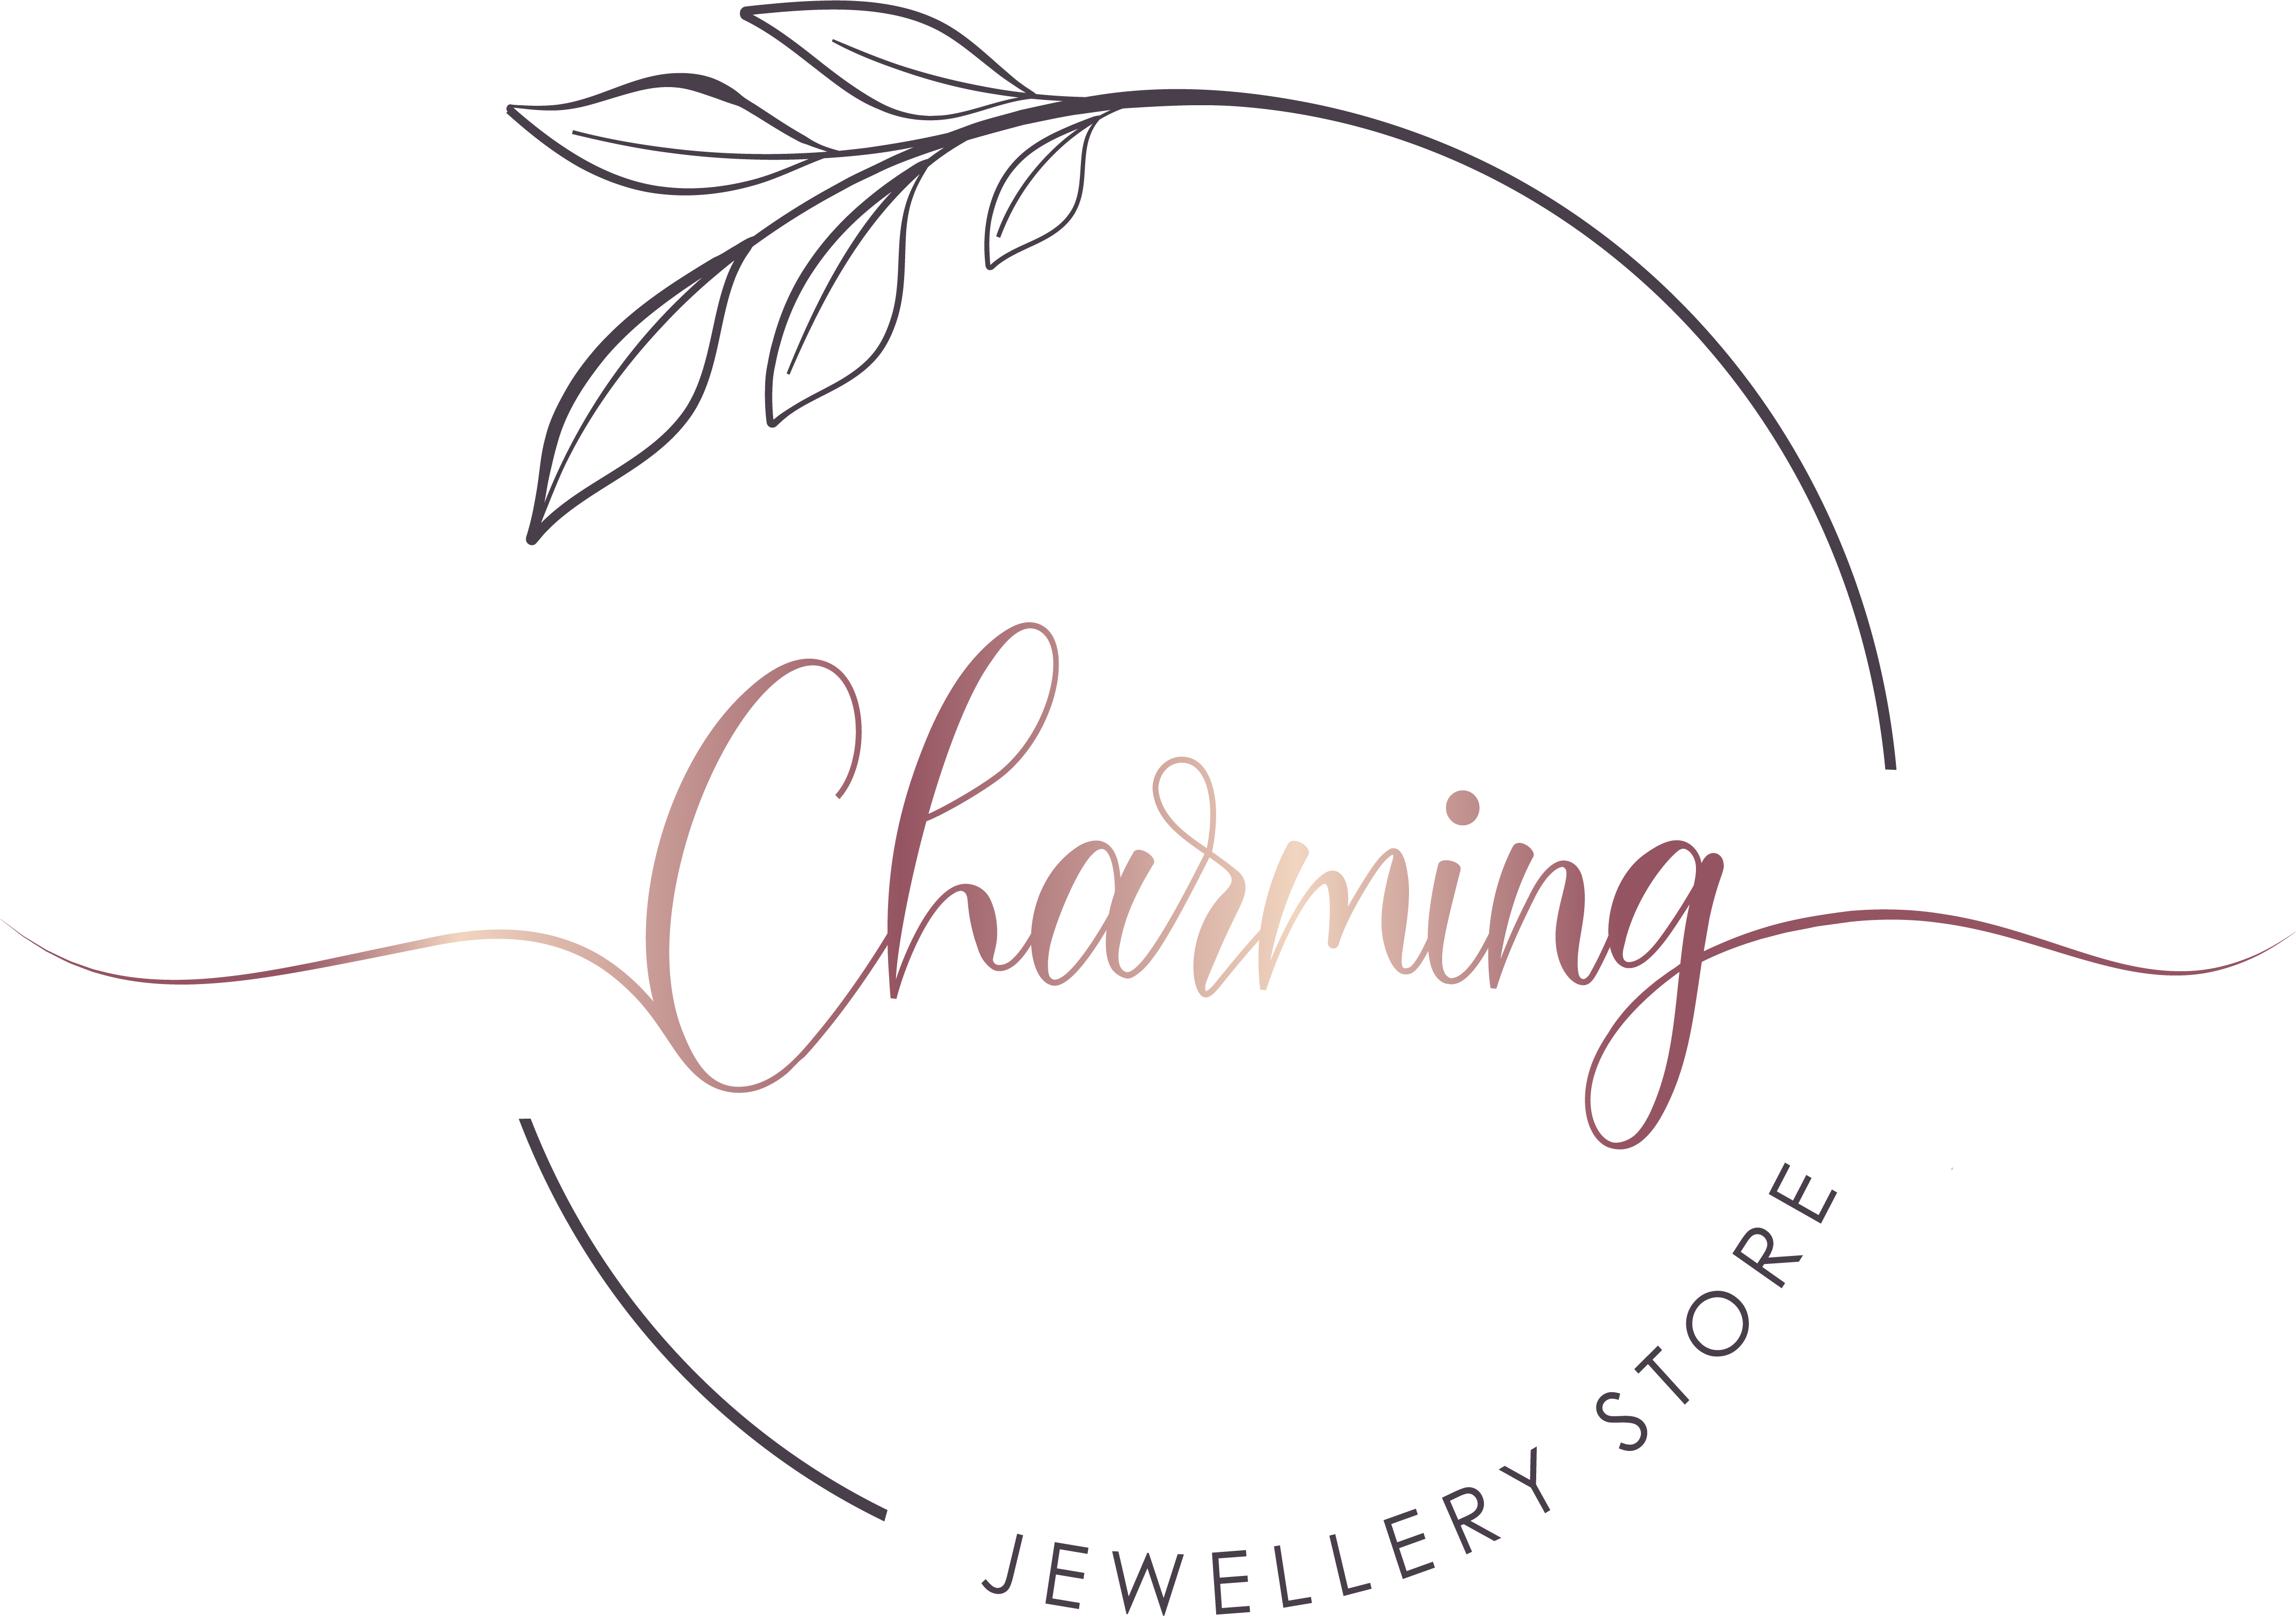 The Charming Jewellery Store